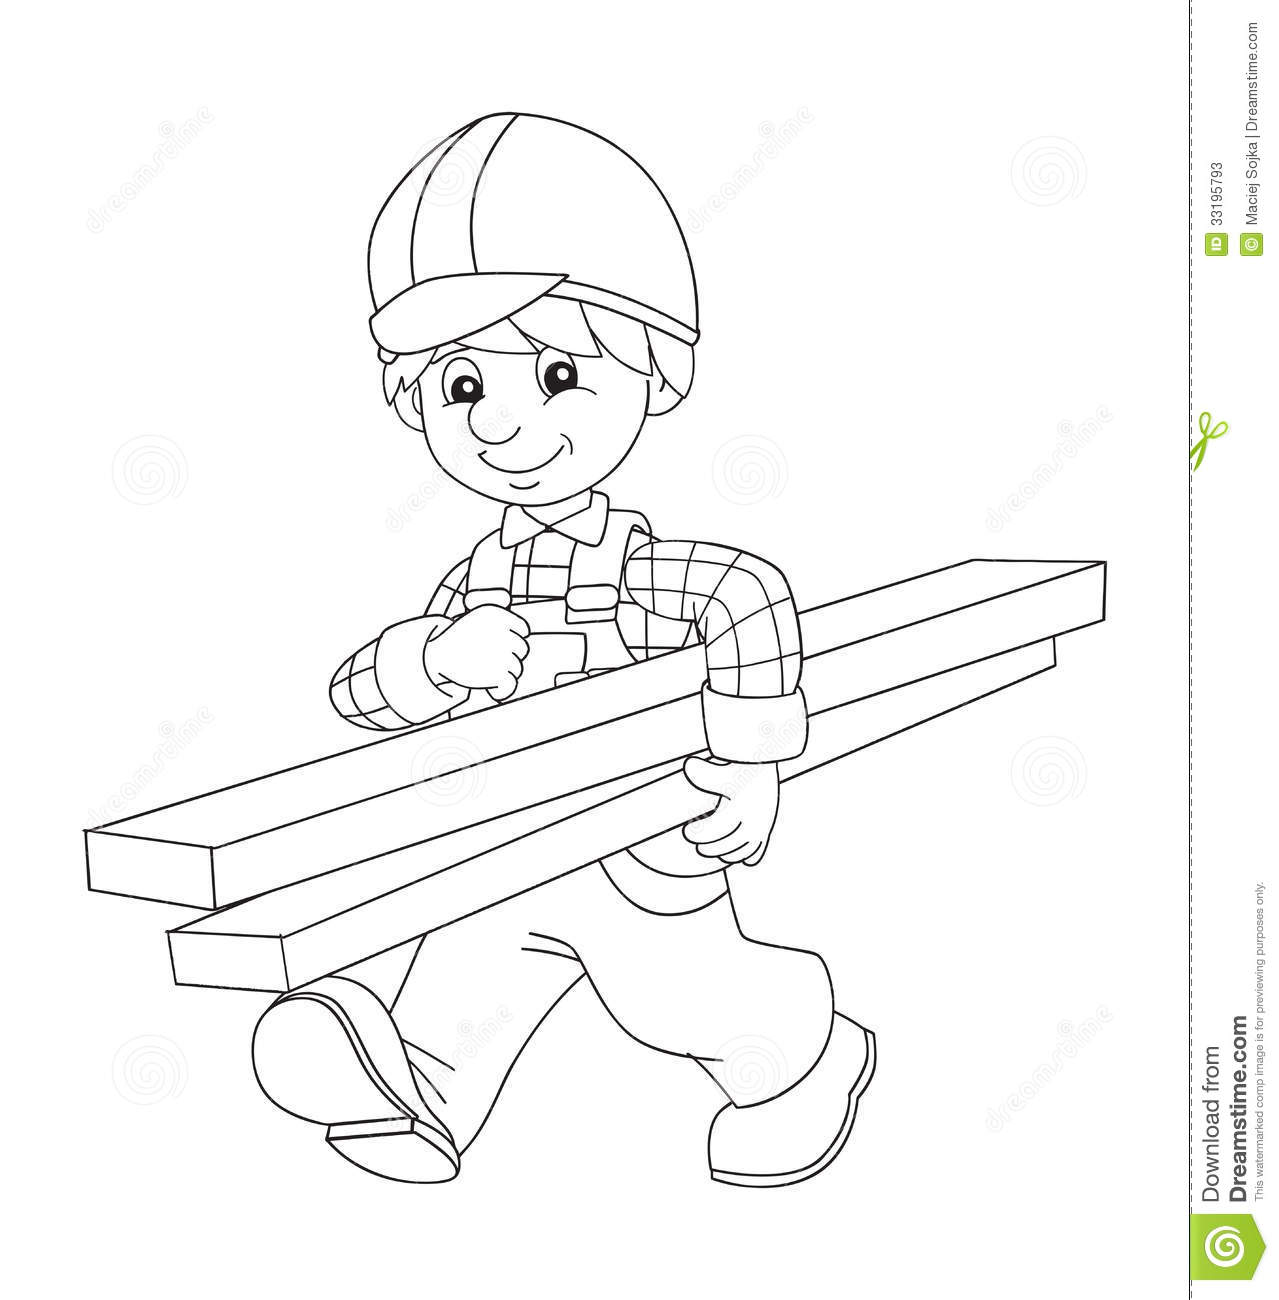 Free Construction Worker Coloring Pages